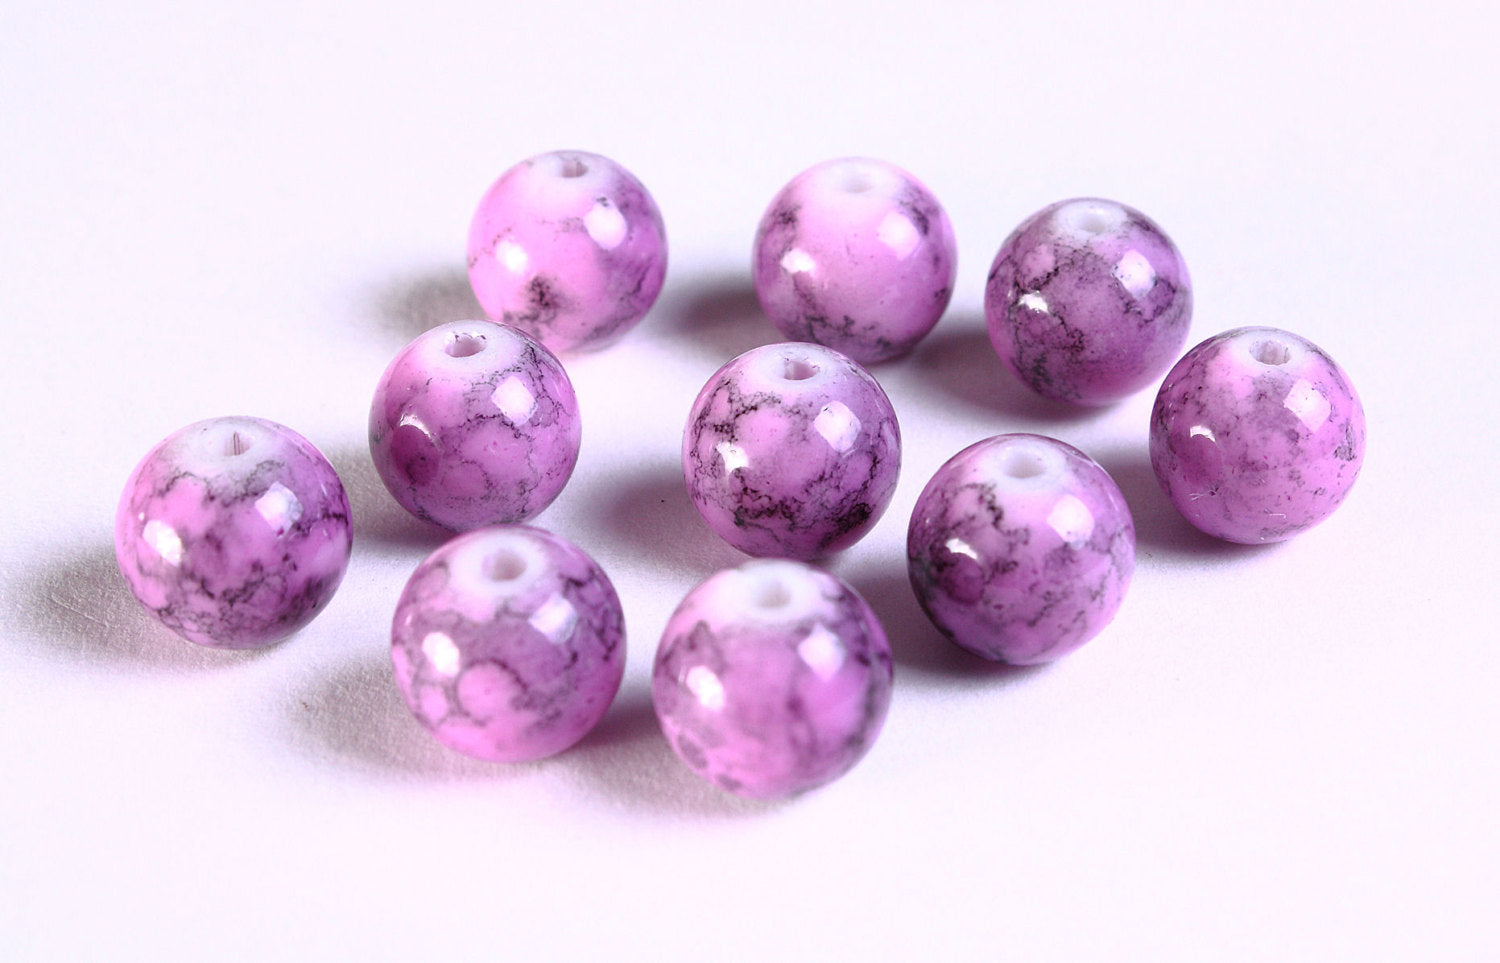 10mm mixed color round glass beads - 10mm purple beads - 10 pieces (1091)